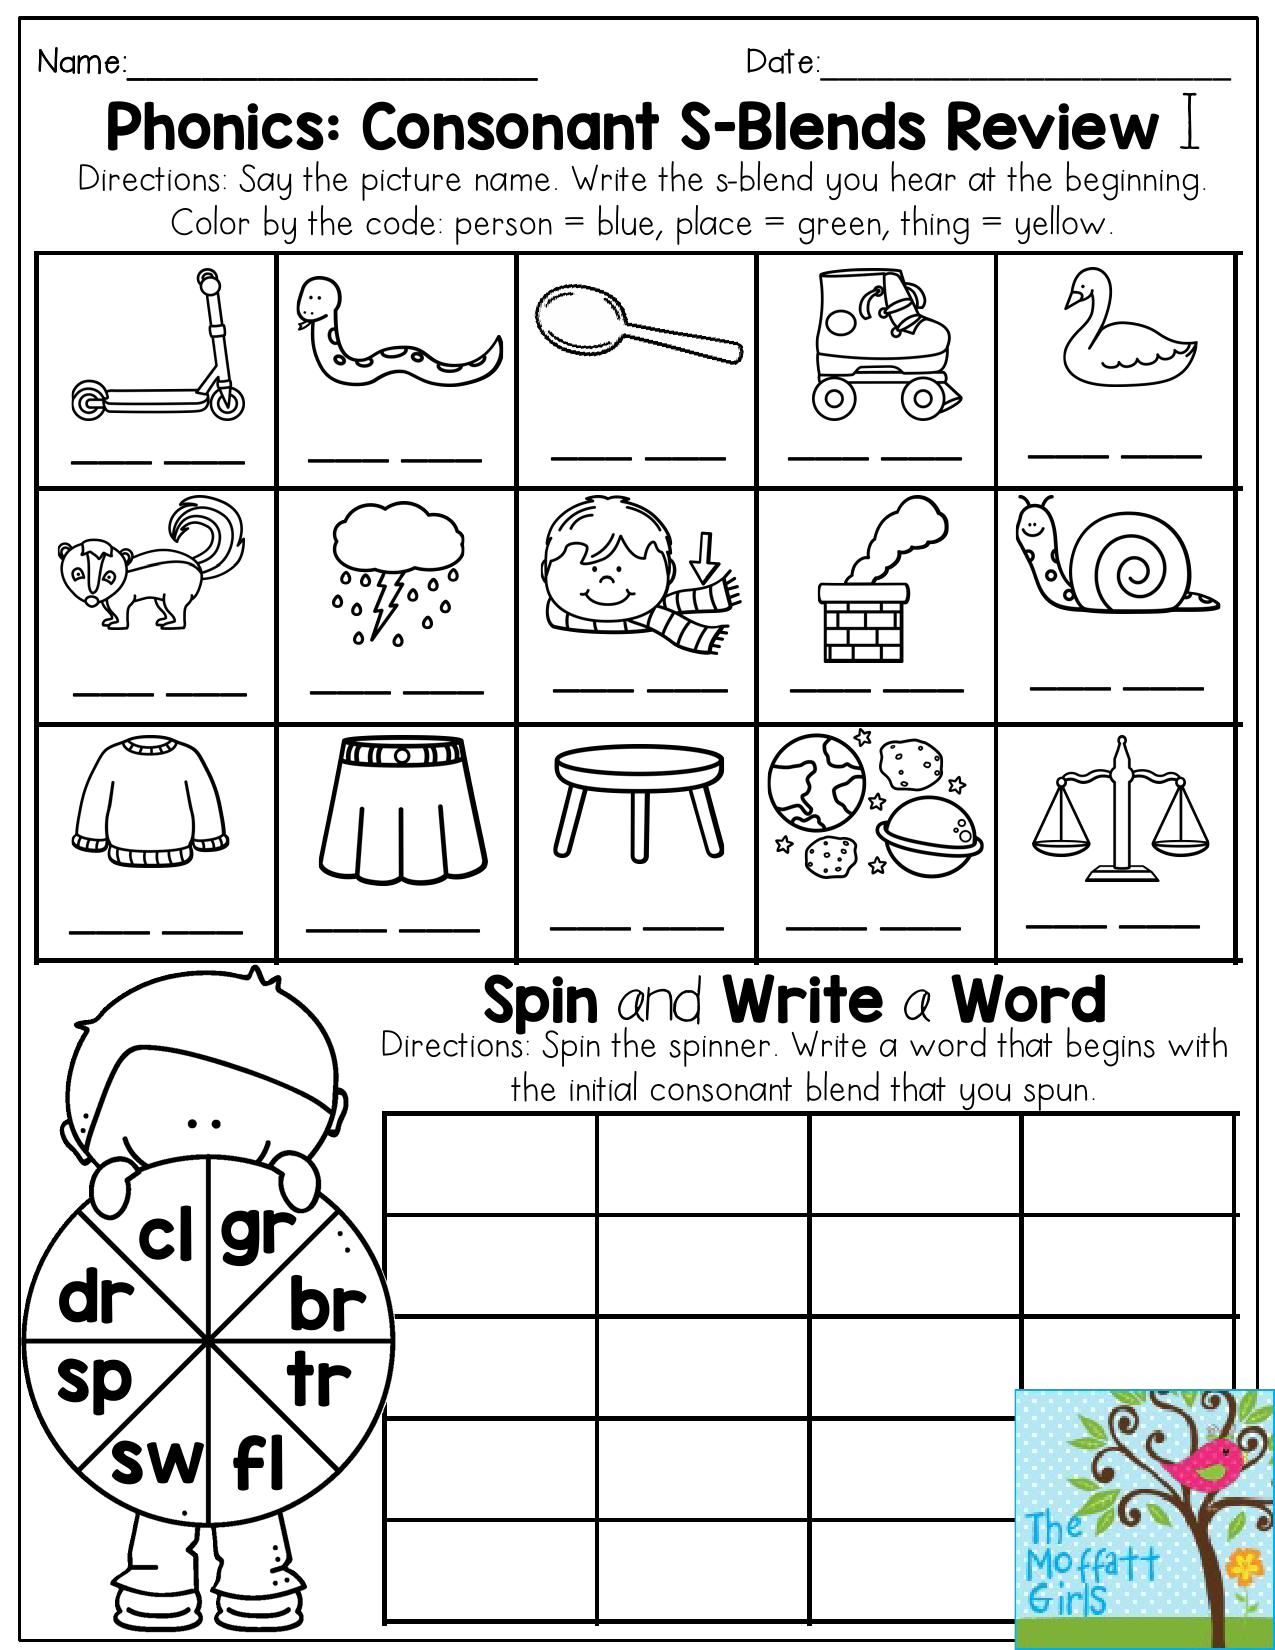 Phonics: Consonant S-Blends Review. Write the s-blend that ...